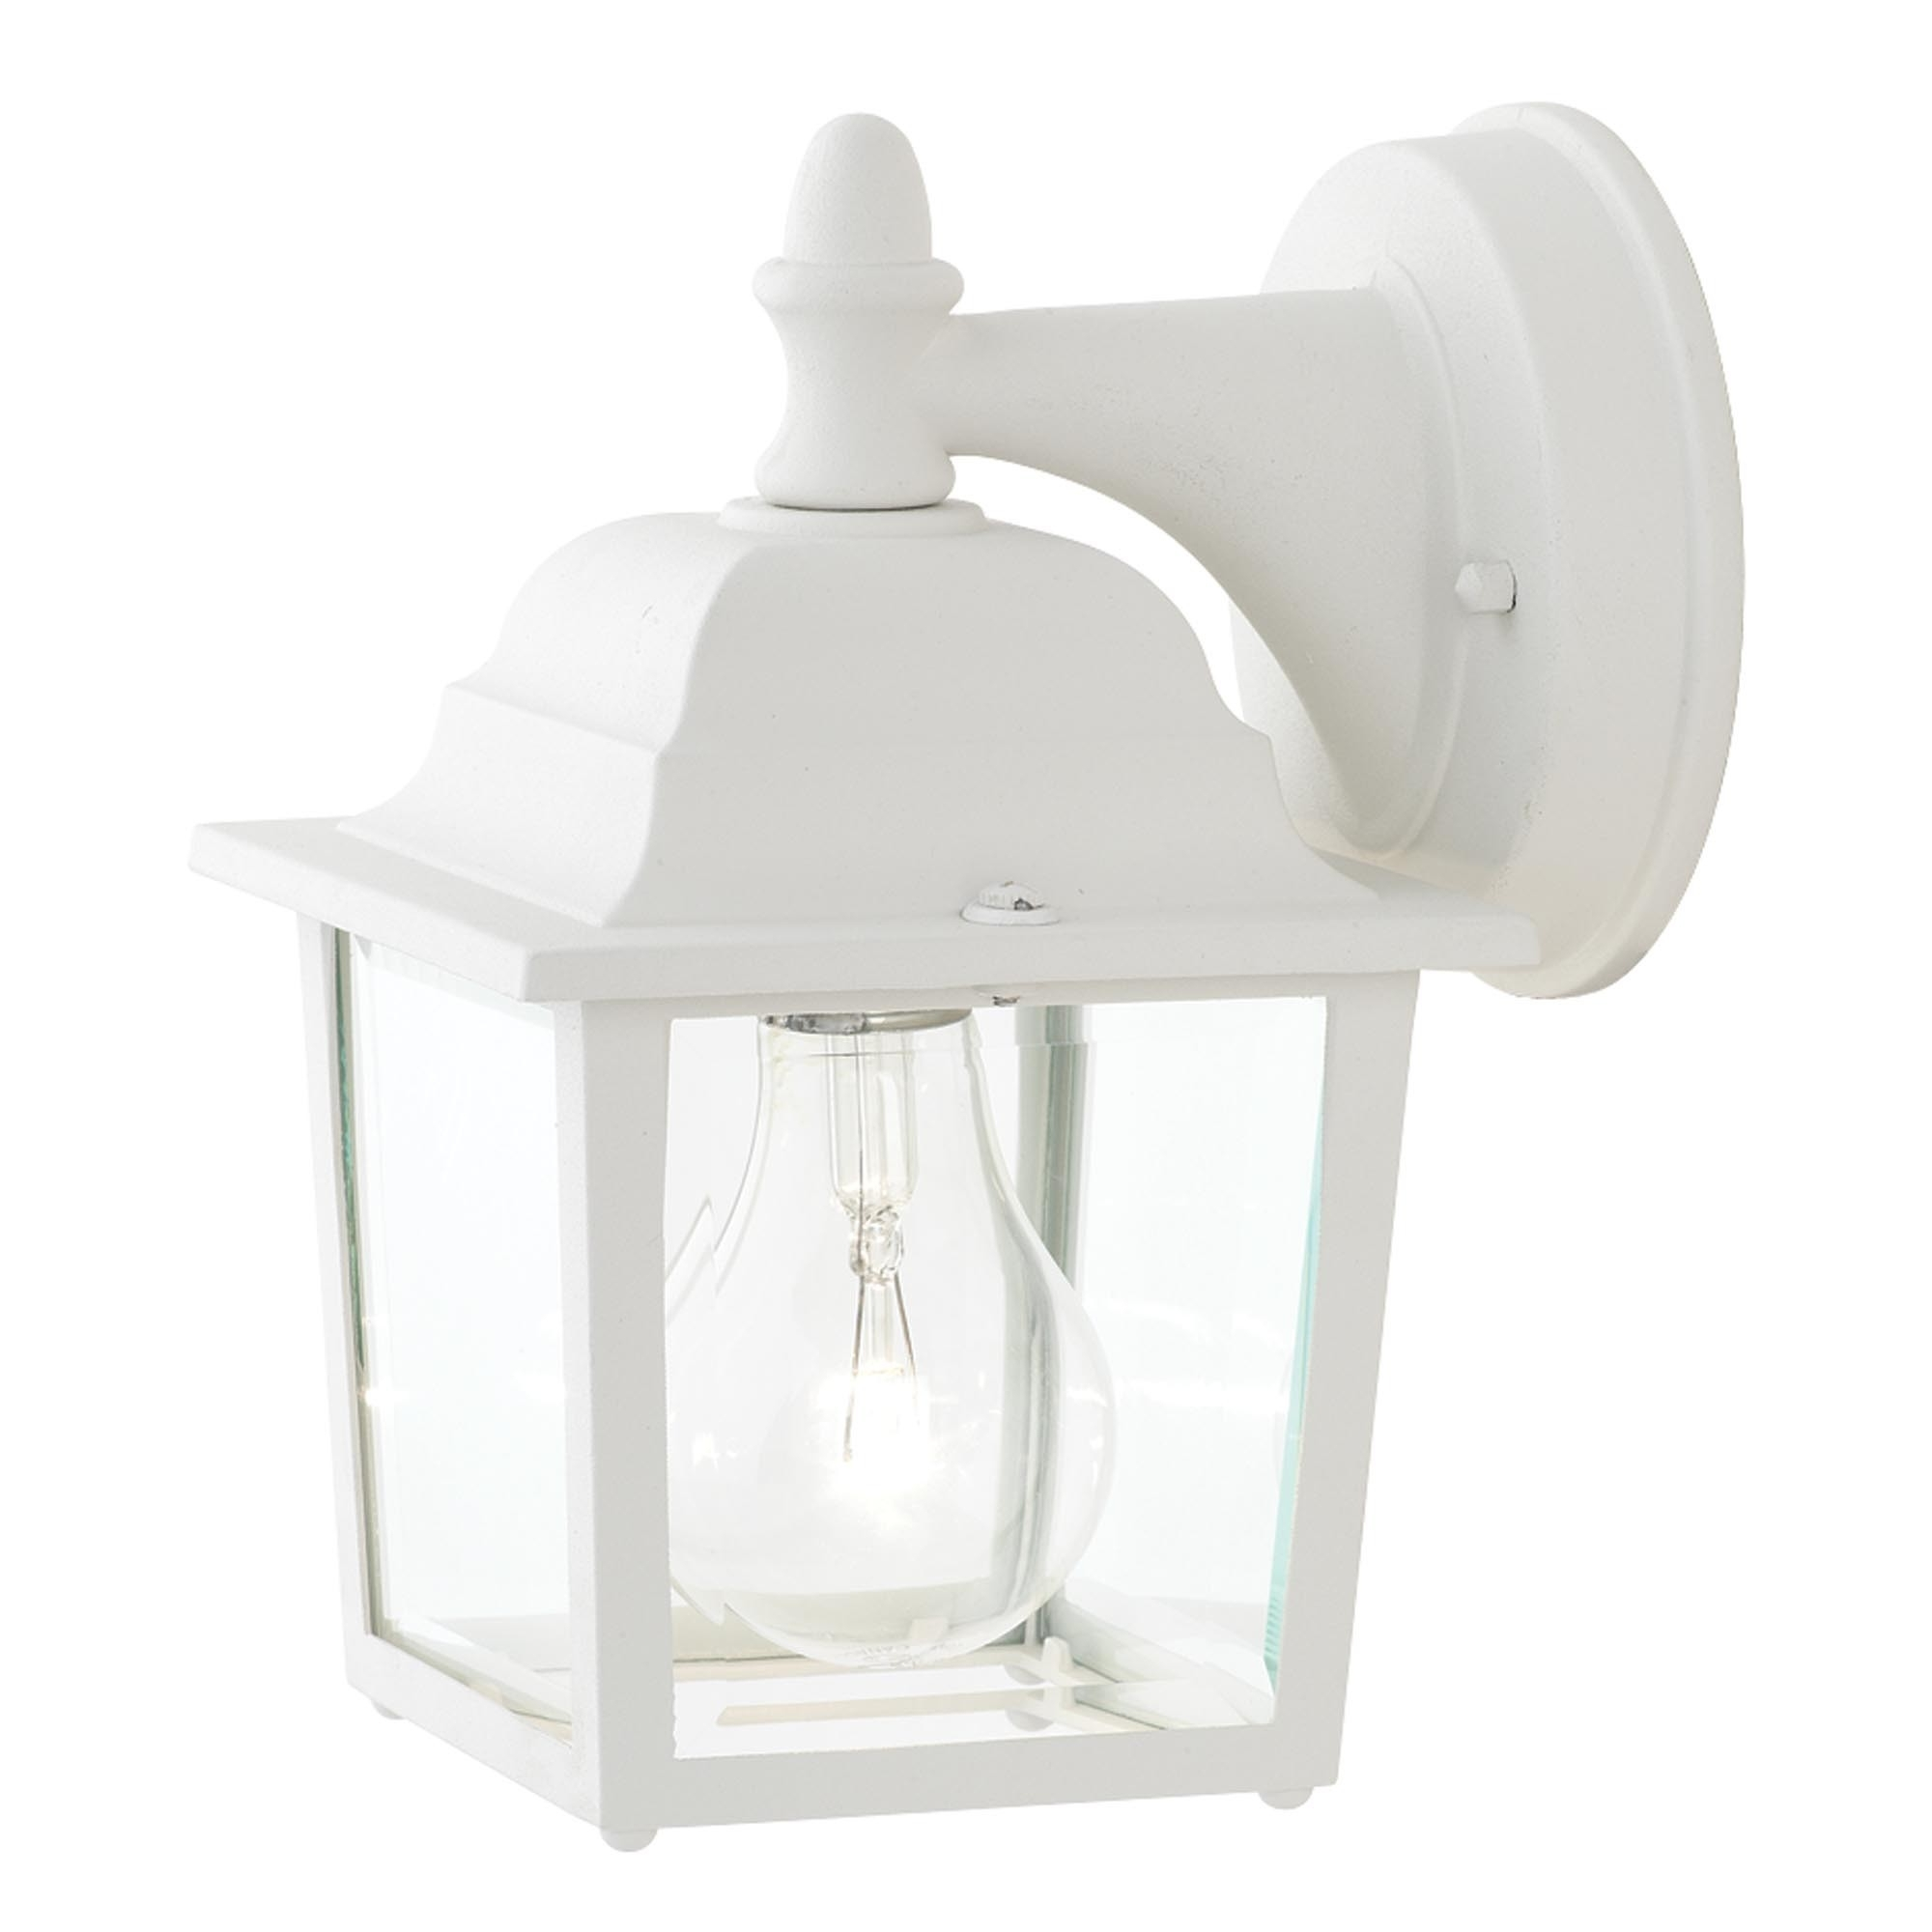 Outdoor Wall Lights In White Intended For Widely Used Light : New White Outside Wall Lights For Gas With Mount Led Light (View 5 of 20)